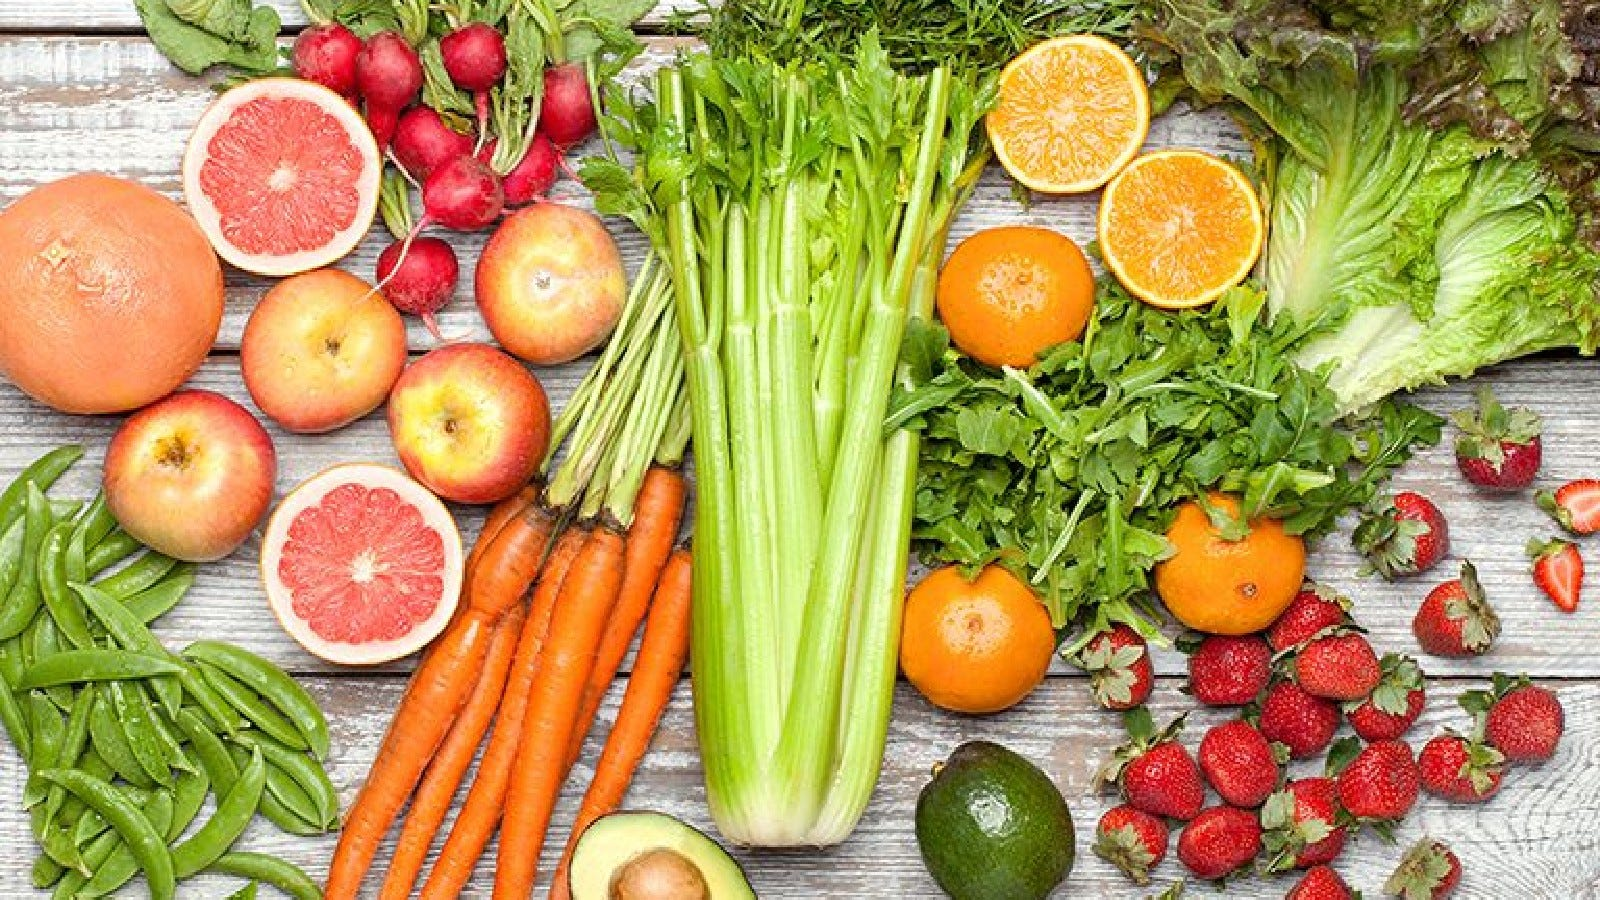 Piles of fruits and veggies from Farm Fresh to You.